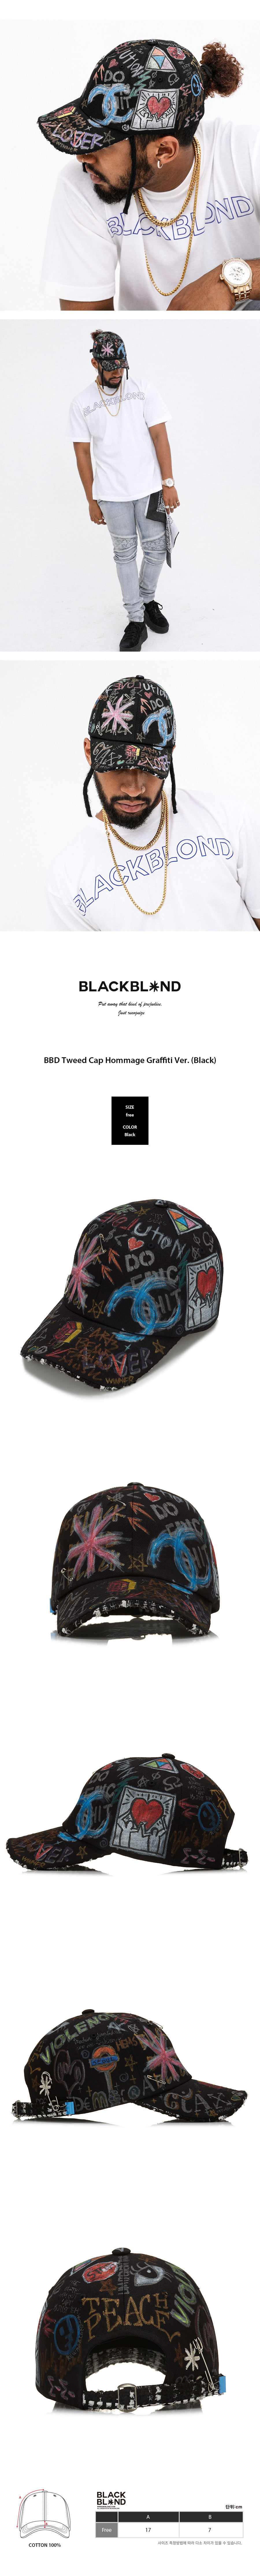 BBD-Tweed-Cap-Graffiti-Ver-black.jpg